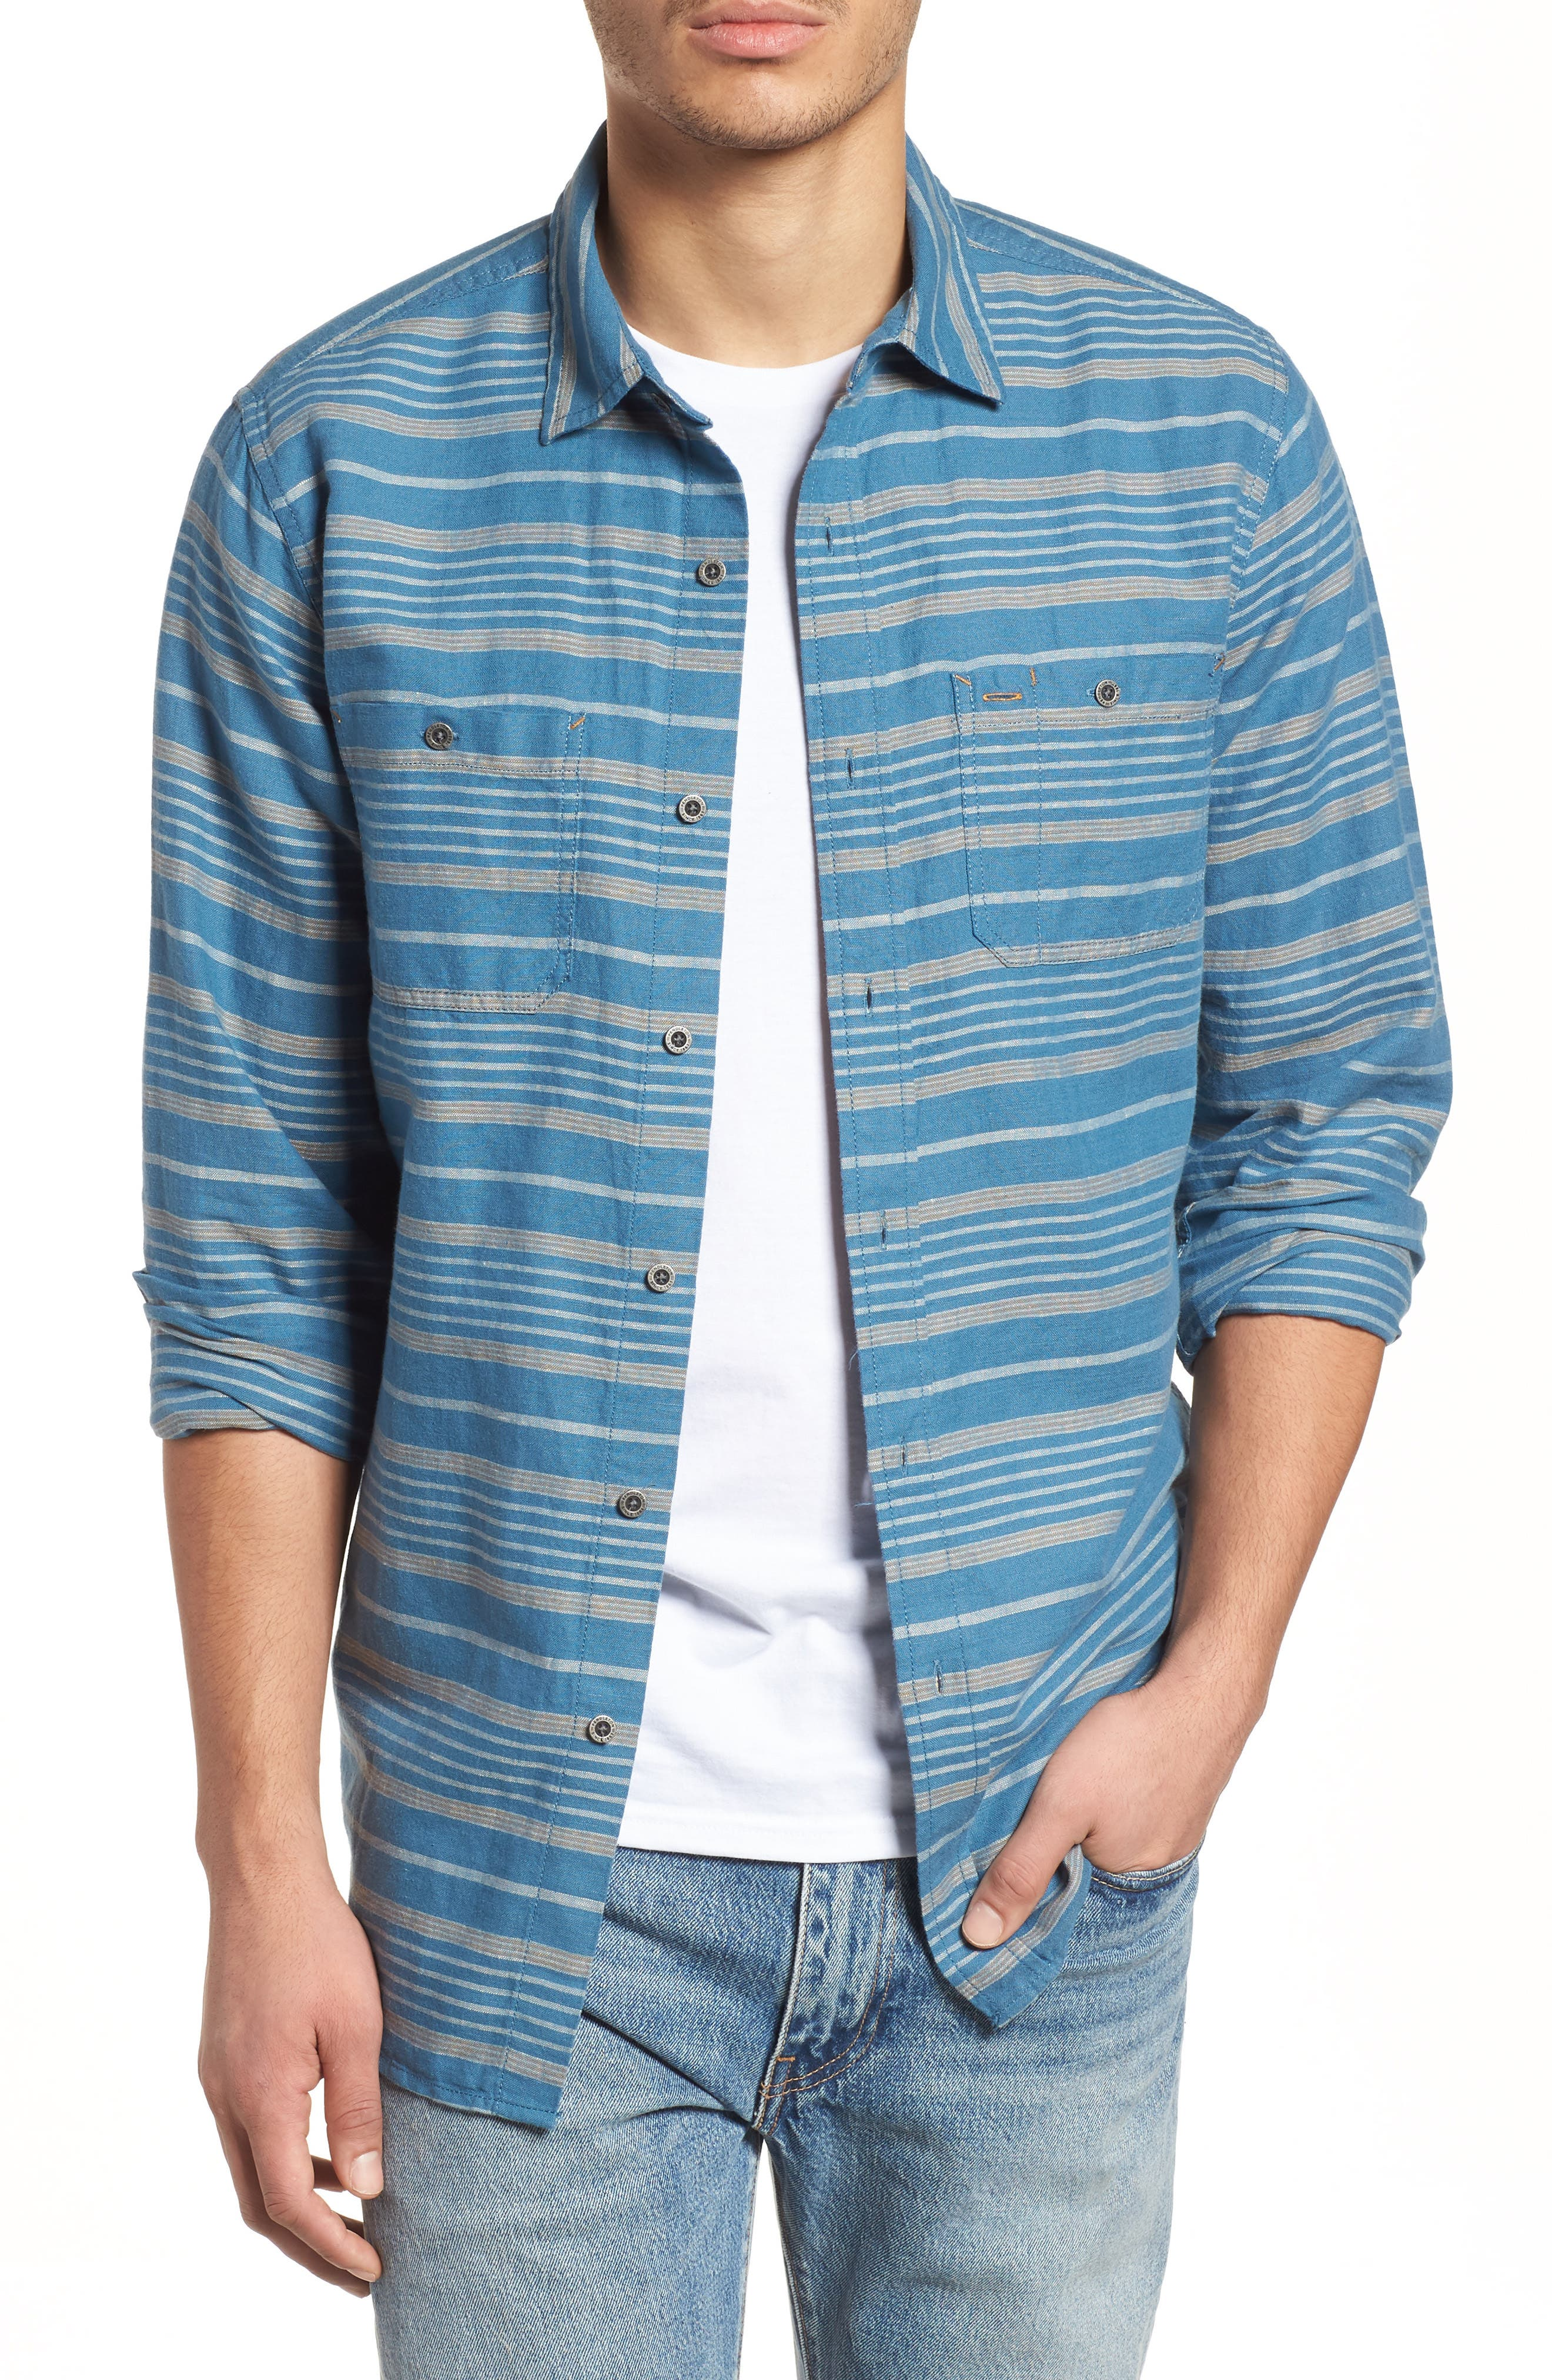 Kay Street Fitted Shirt,                         Main,                         color, Navy/ Cream Stripe